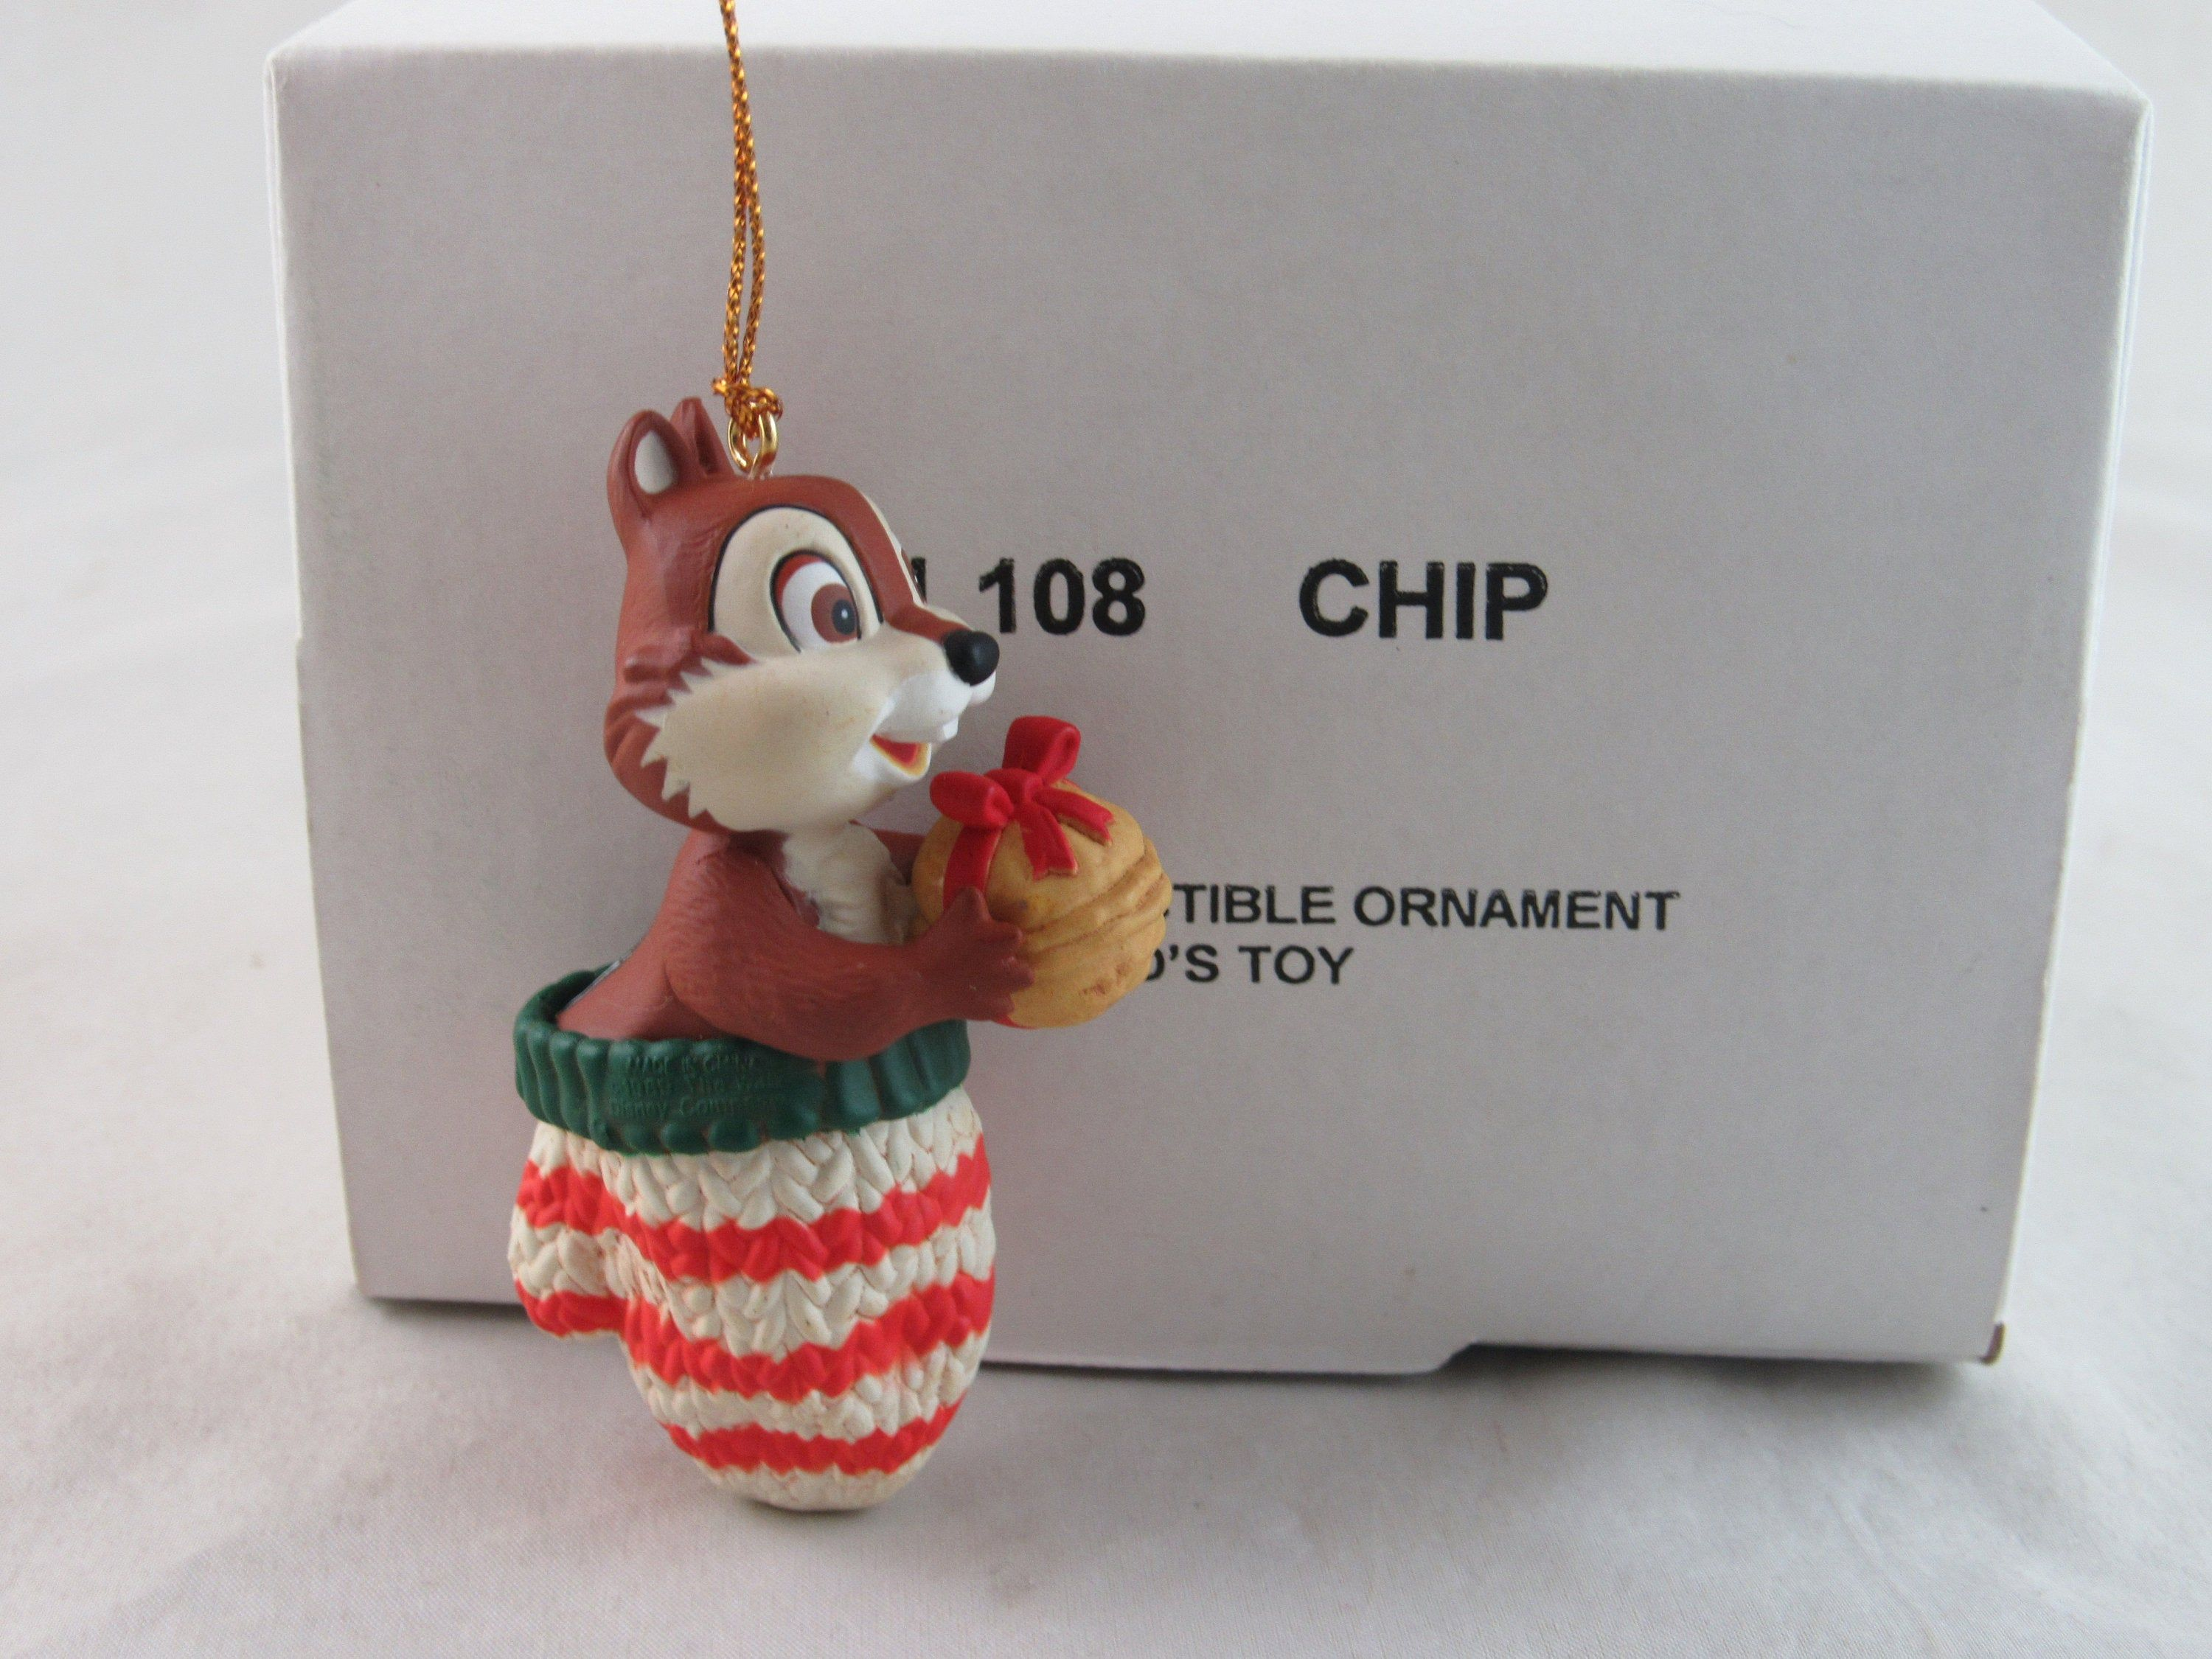 Grolier Disney Chip From Chip And Dale Christmas Ornament In Etsy Disney Christmas Ornaments Christmas Ornaments Ornaments